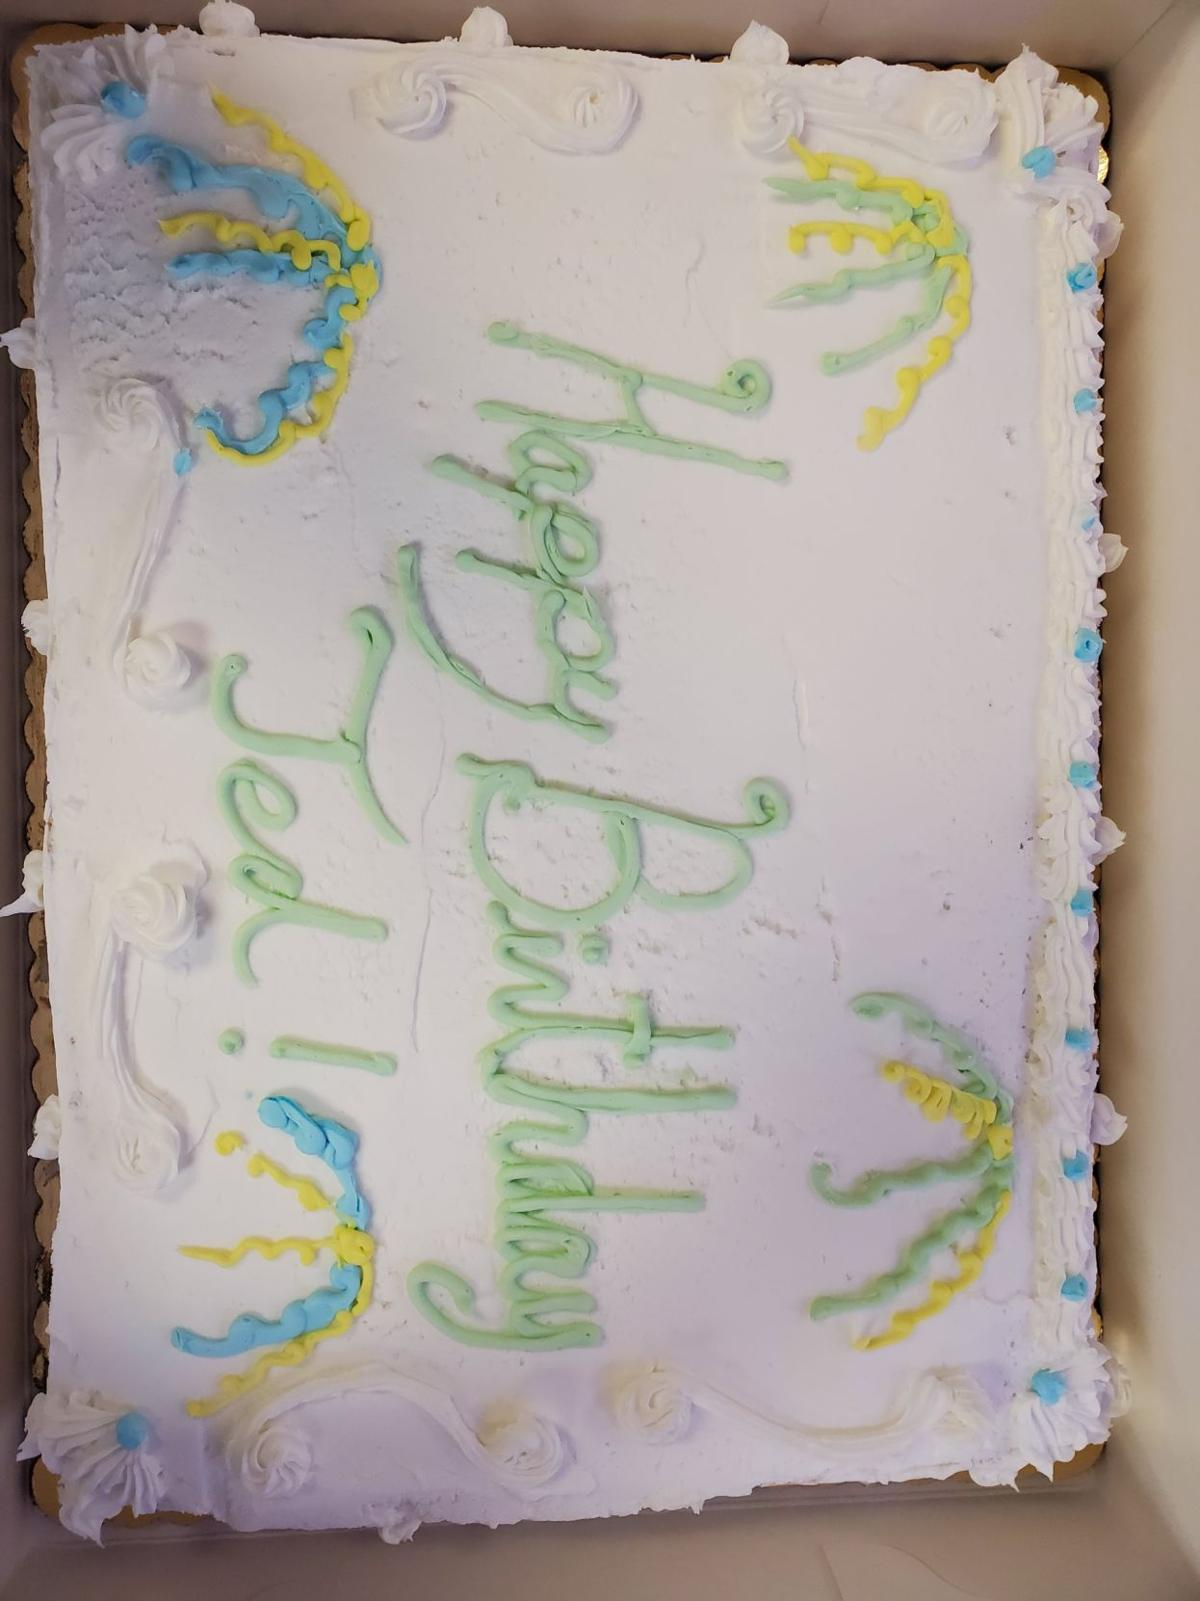 A birthday cake made for Ted Deutsch